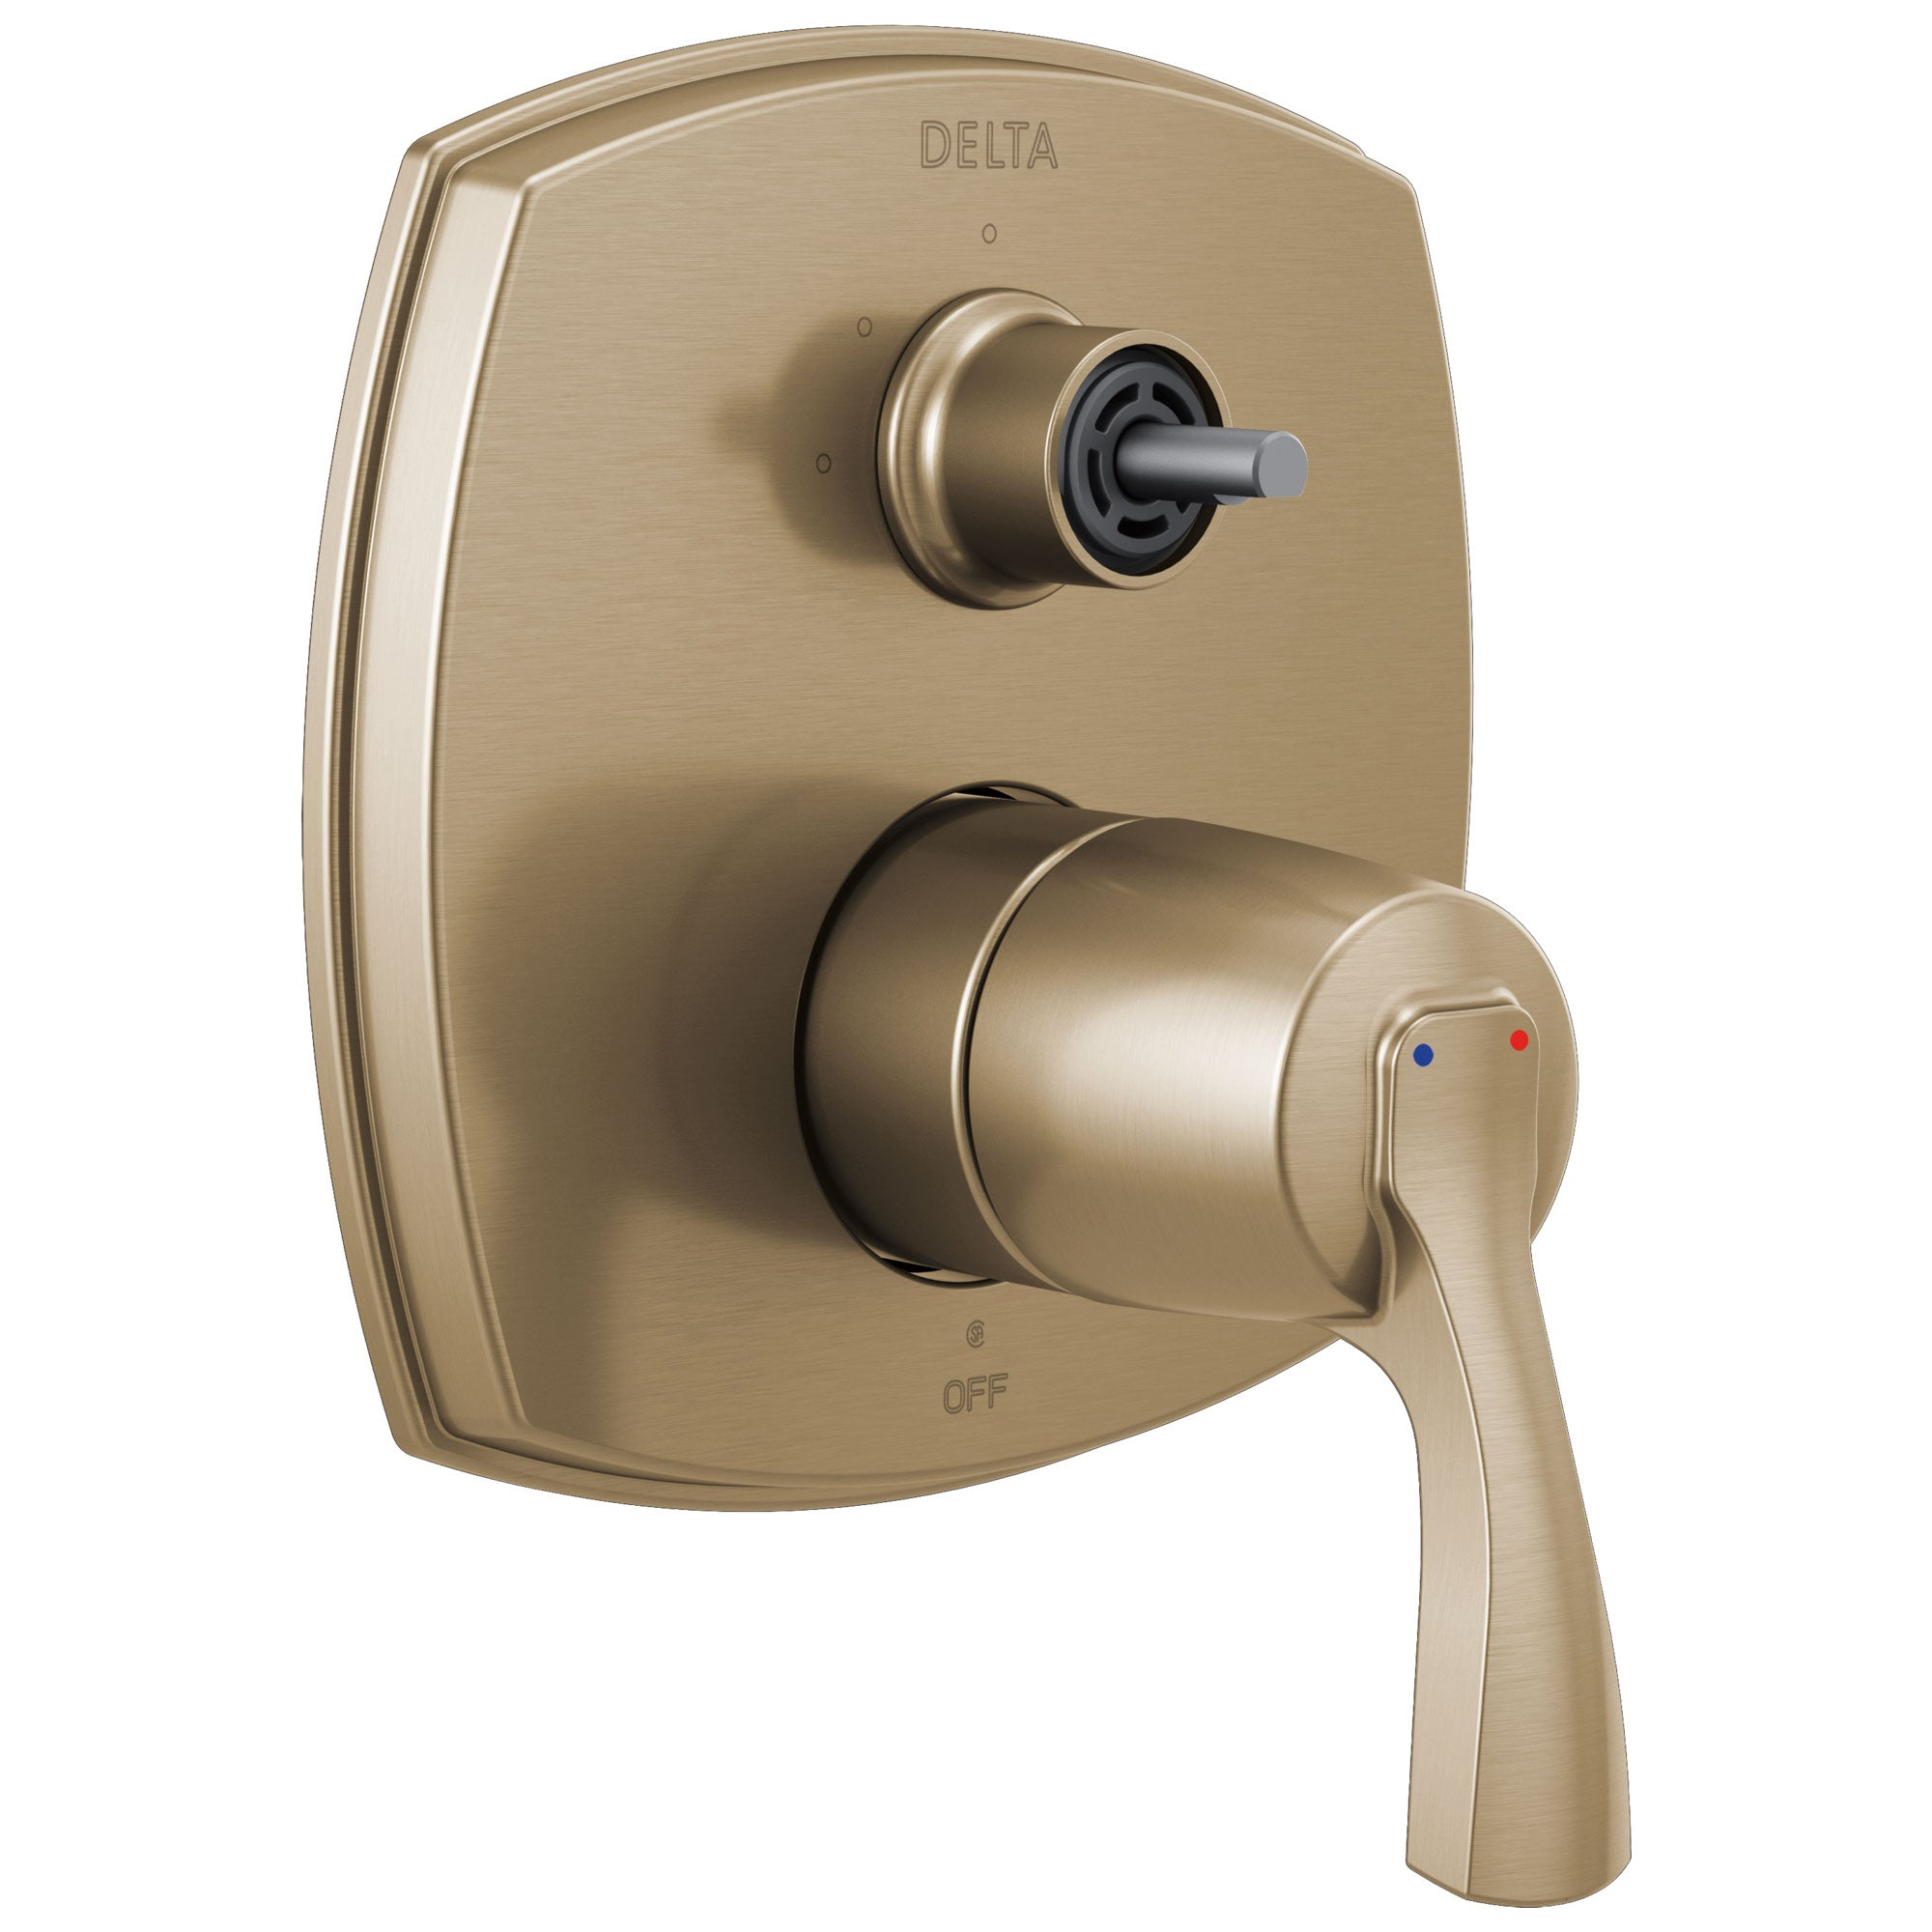 Delta Stryke Champagne Bronze Finish 14 Series 3 Function Integrated Diverter Shower Control Trim Kit Less Diverter Handle (Requires Valve) DT24876CZLHP